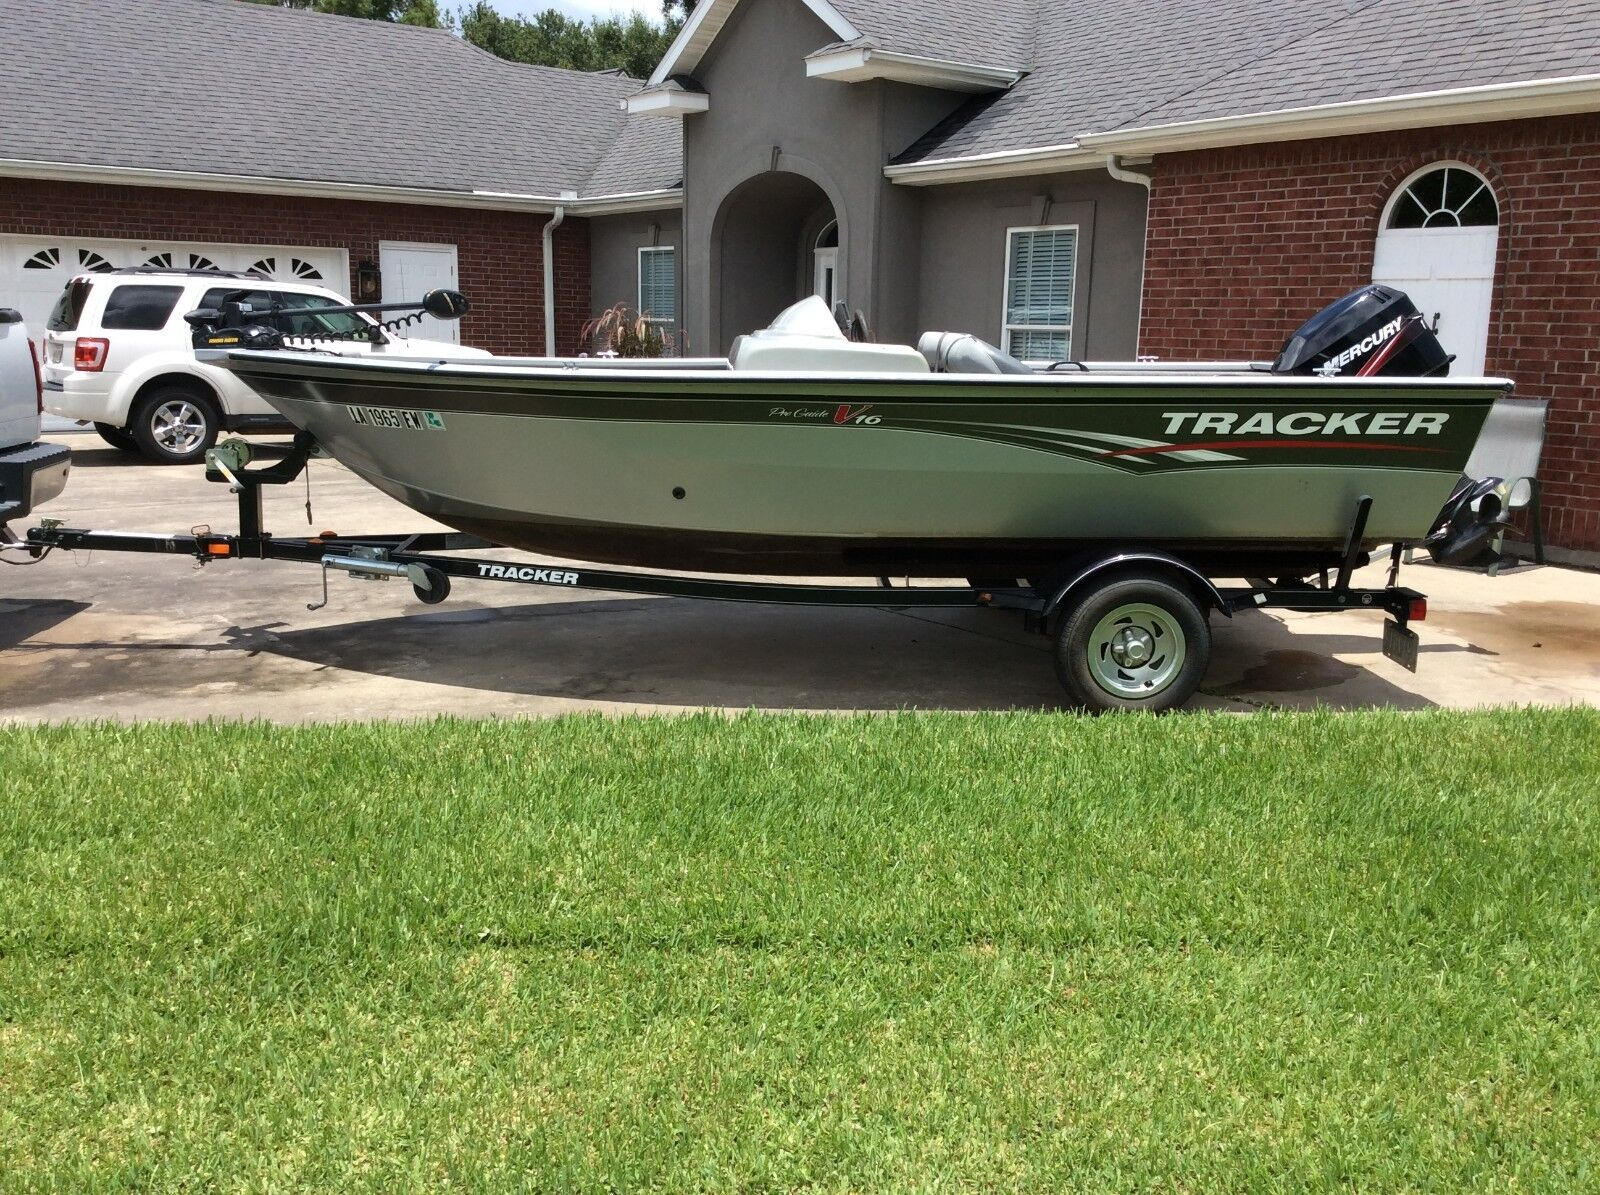 Bass Tracker ProGuide V16 Mercury Outboard Aluminum Welded Trailer